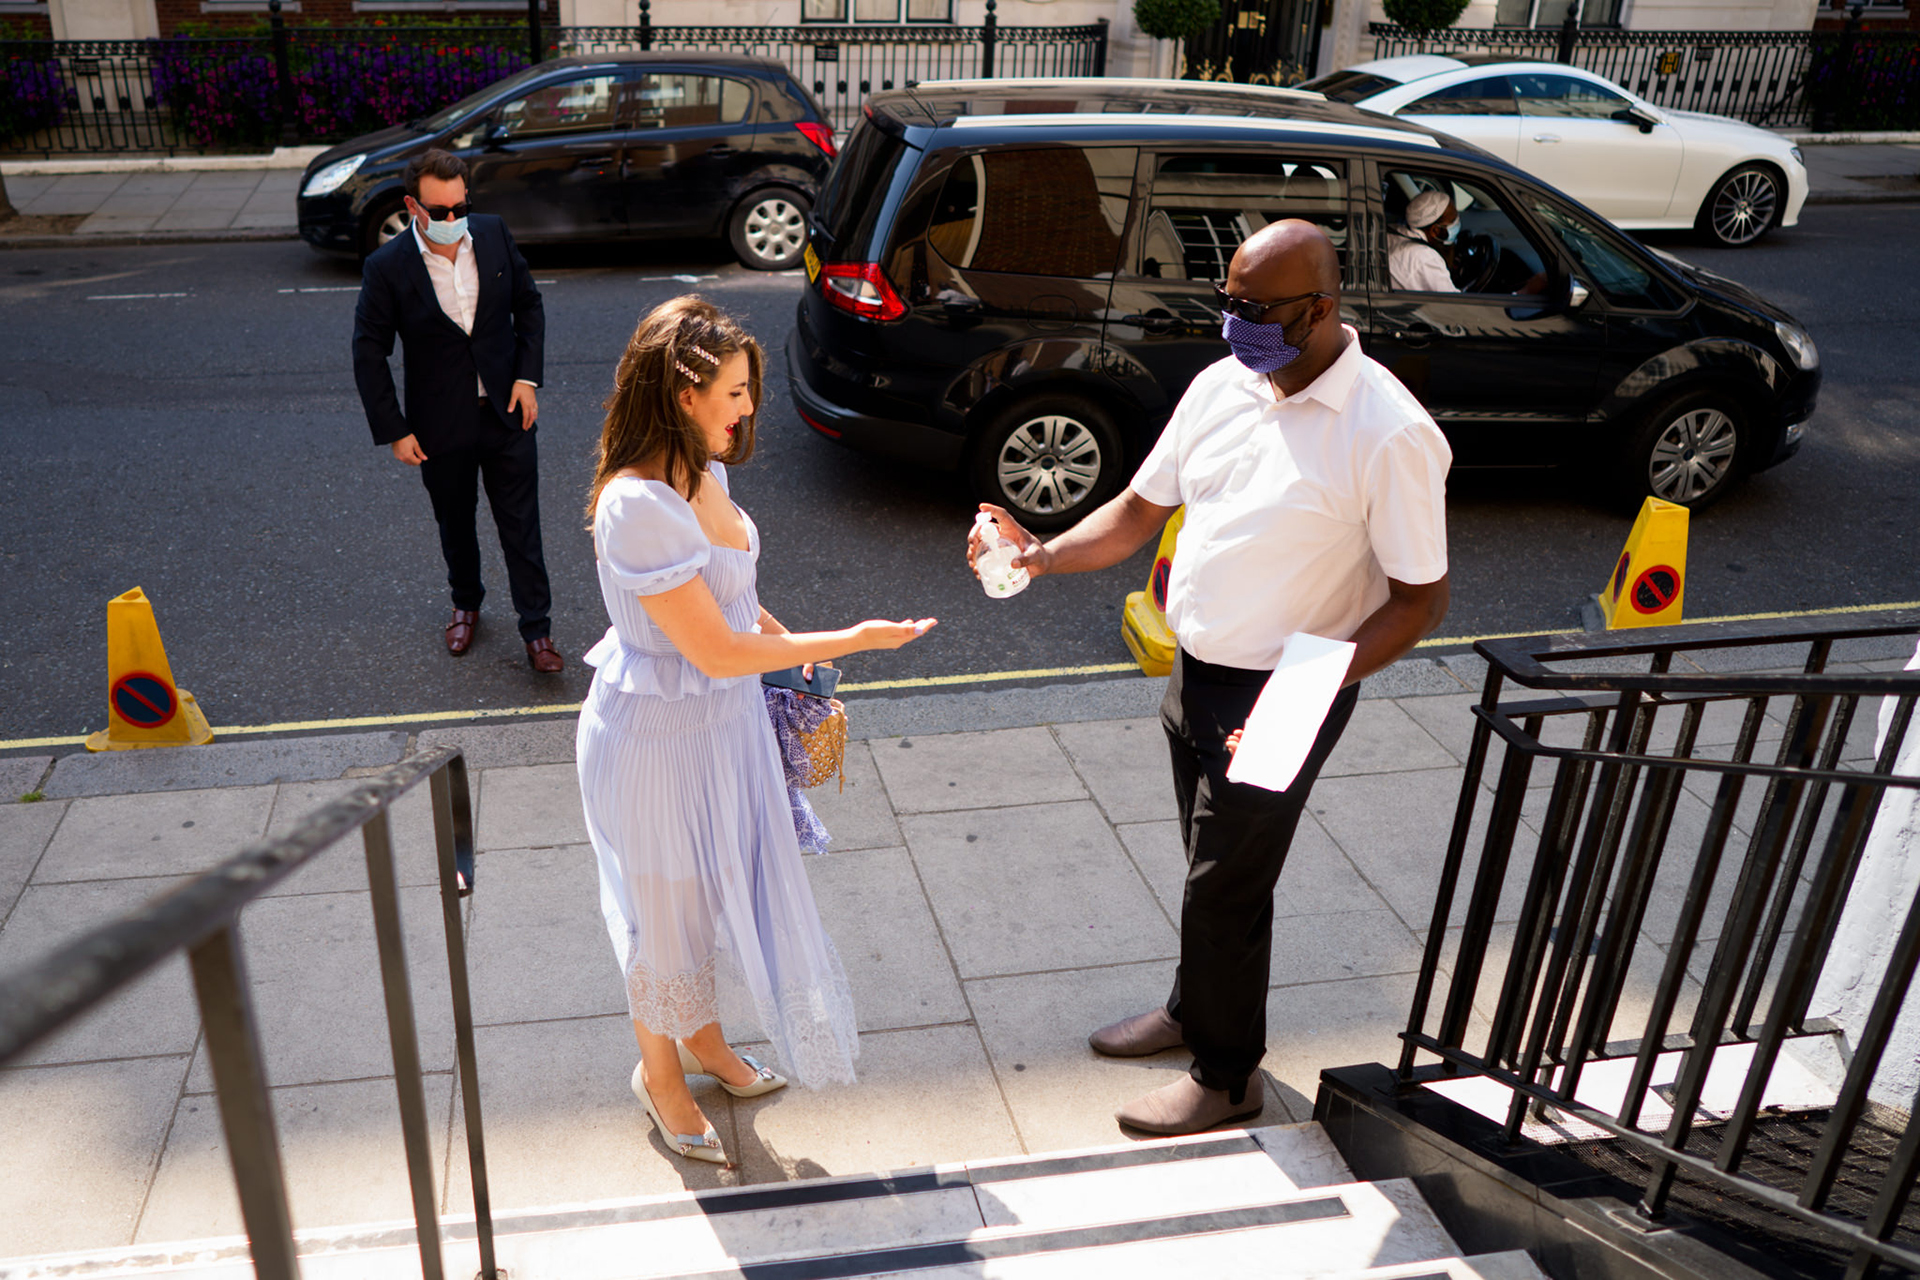 The Central Synagogue London Elopement Photos | A guest is given hand sanitizer by an attendant because of COVID